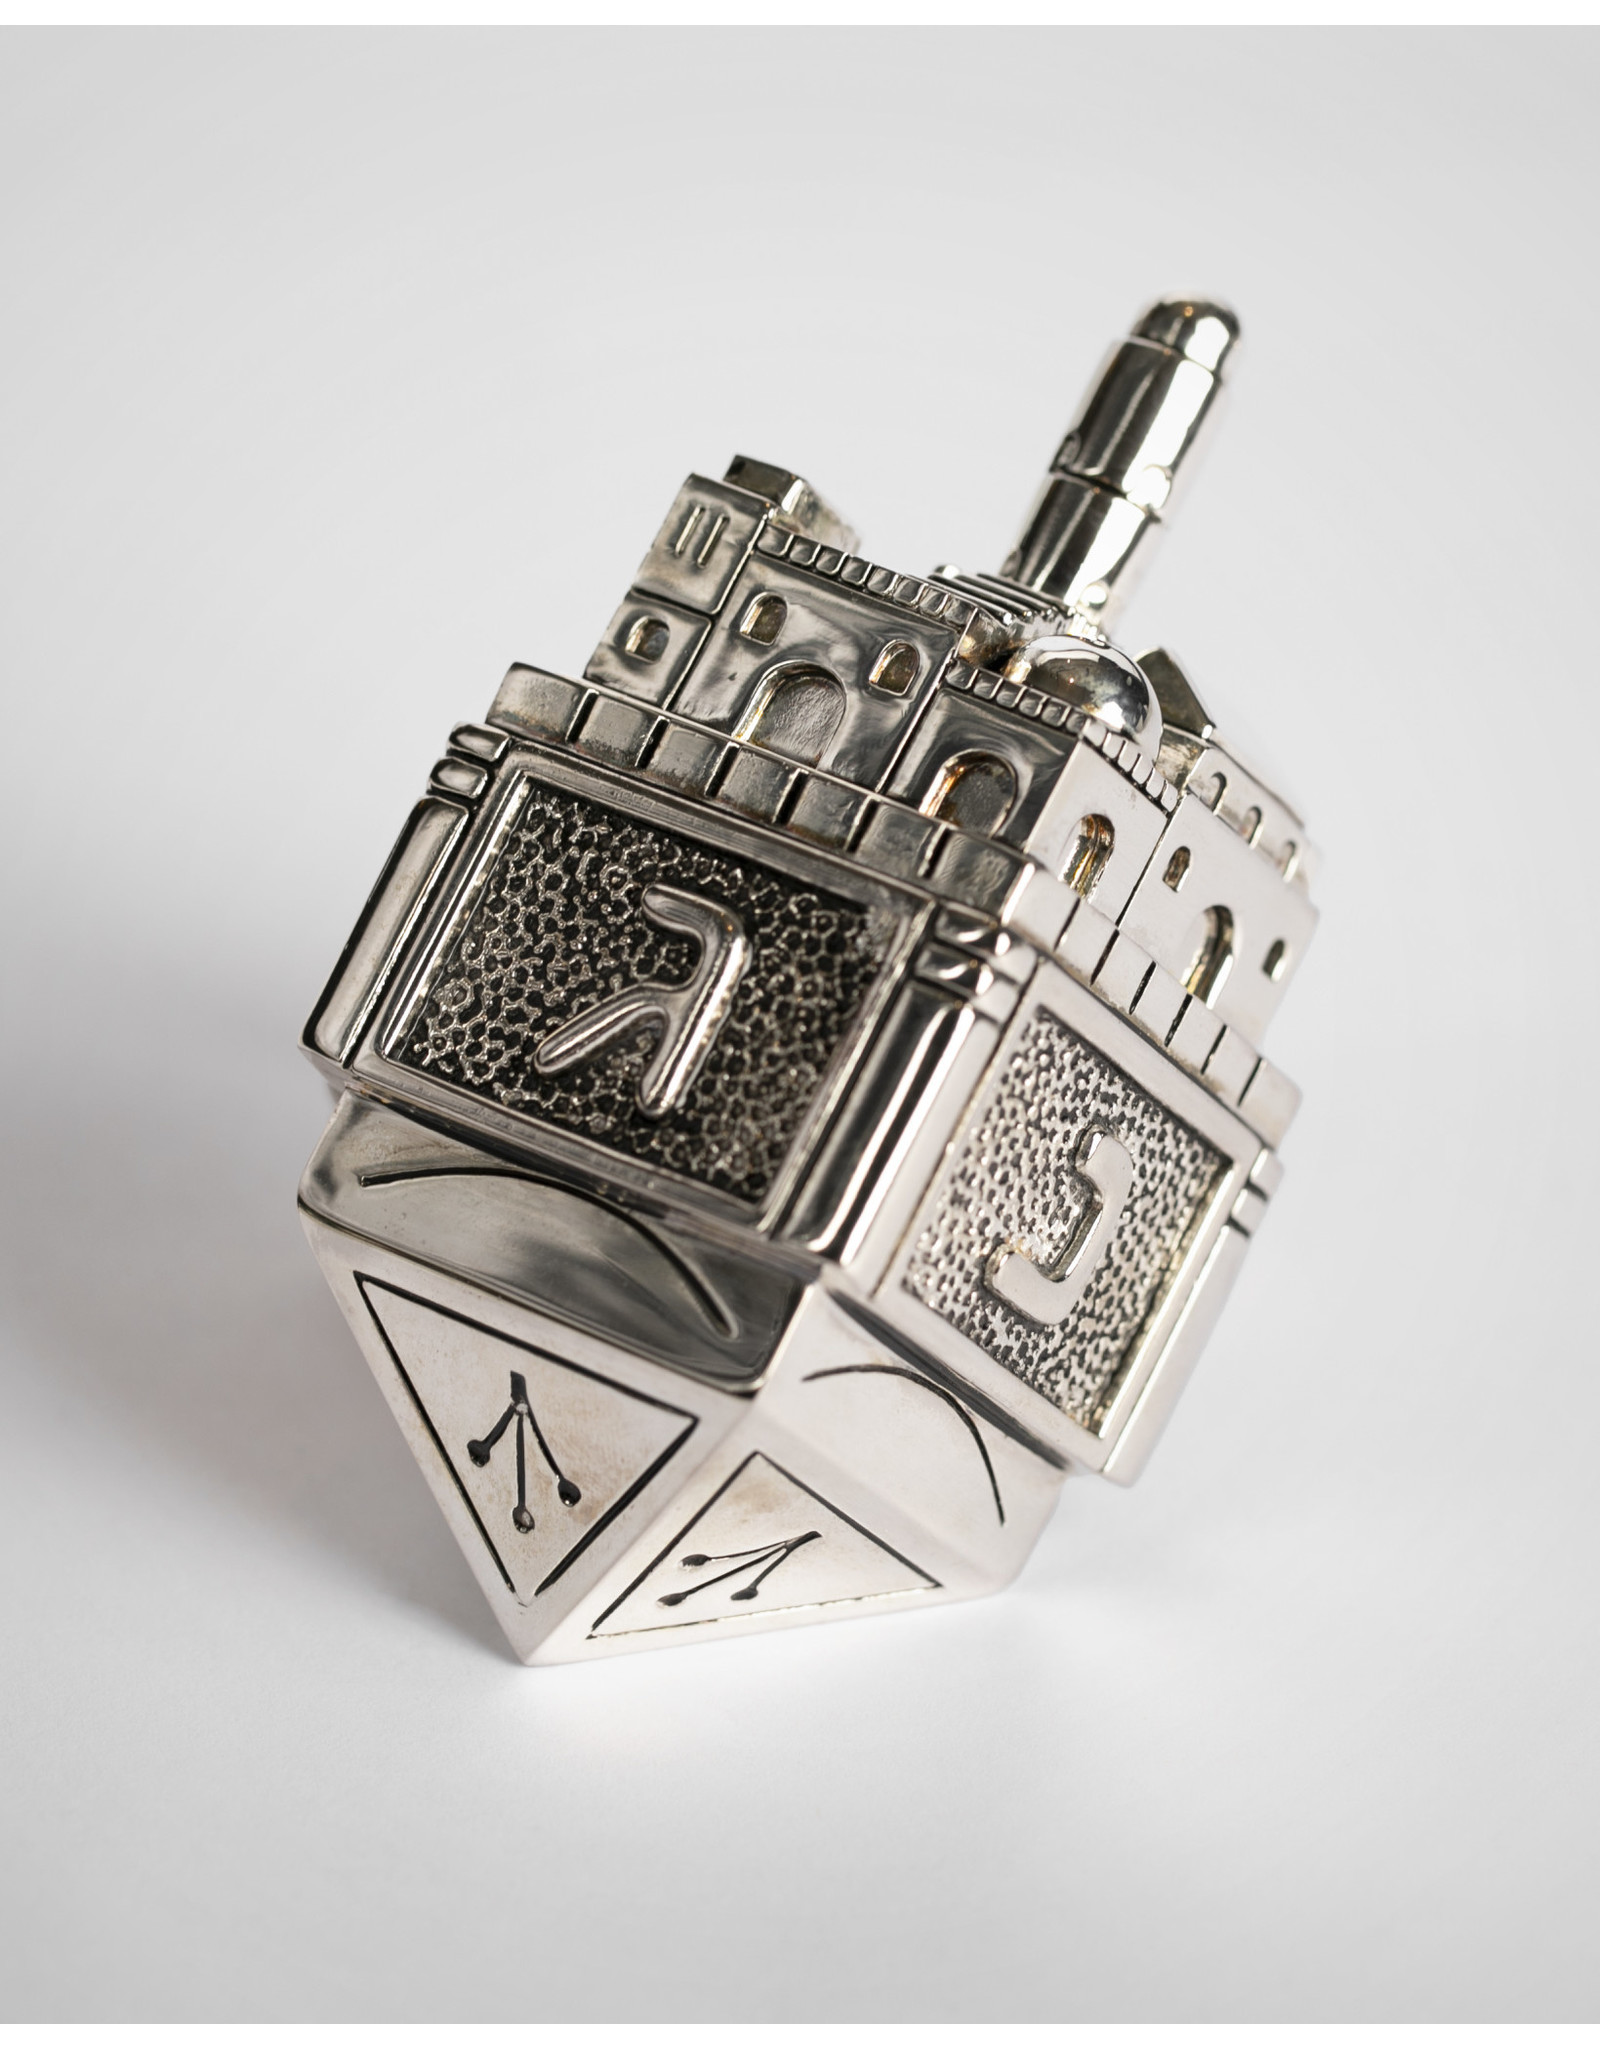 Silver and Metal Jerusalem Hanukkah Dreidel